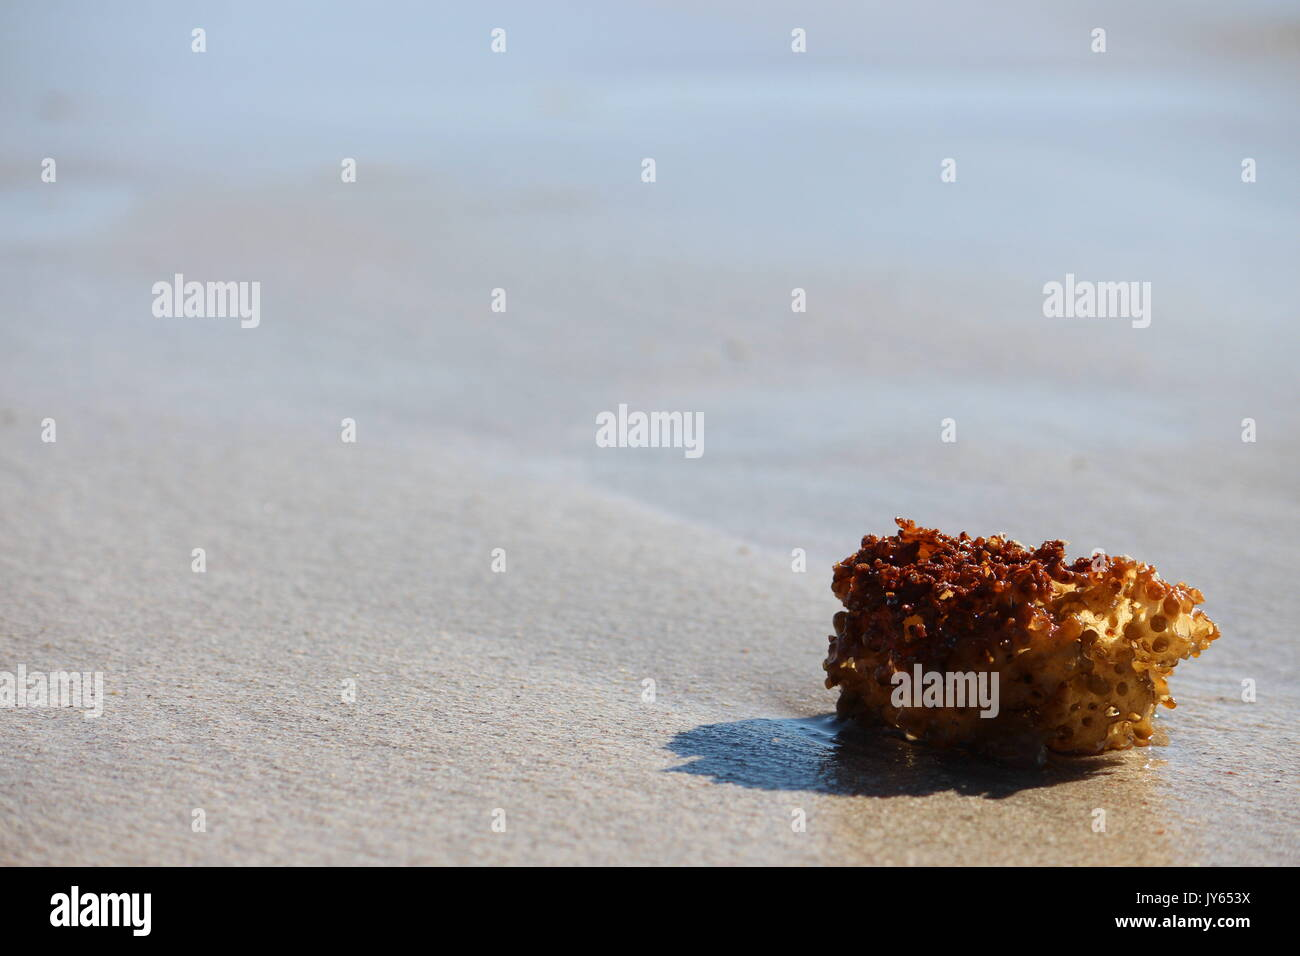 A day at the beach - Stock Image